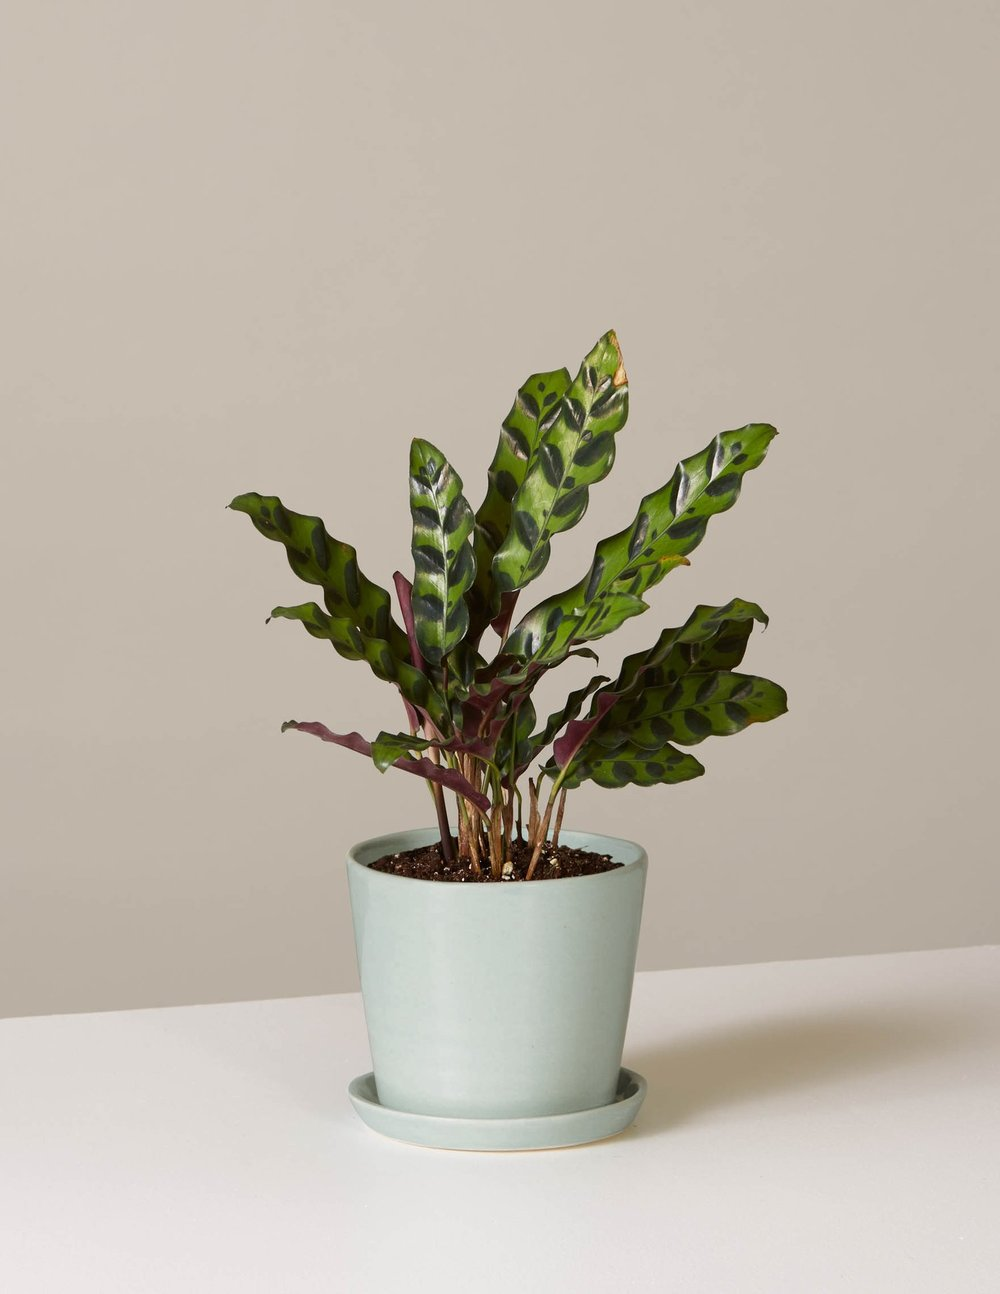 Calathea  Rattlesnake In August Planter, $44.50, The Sill